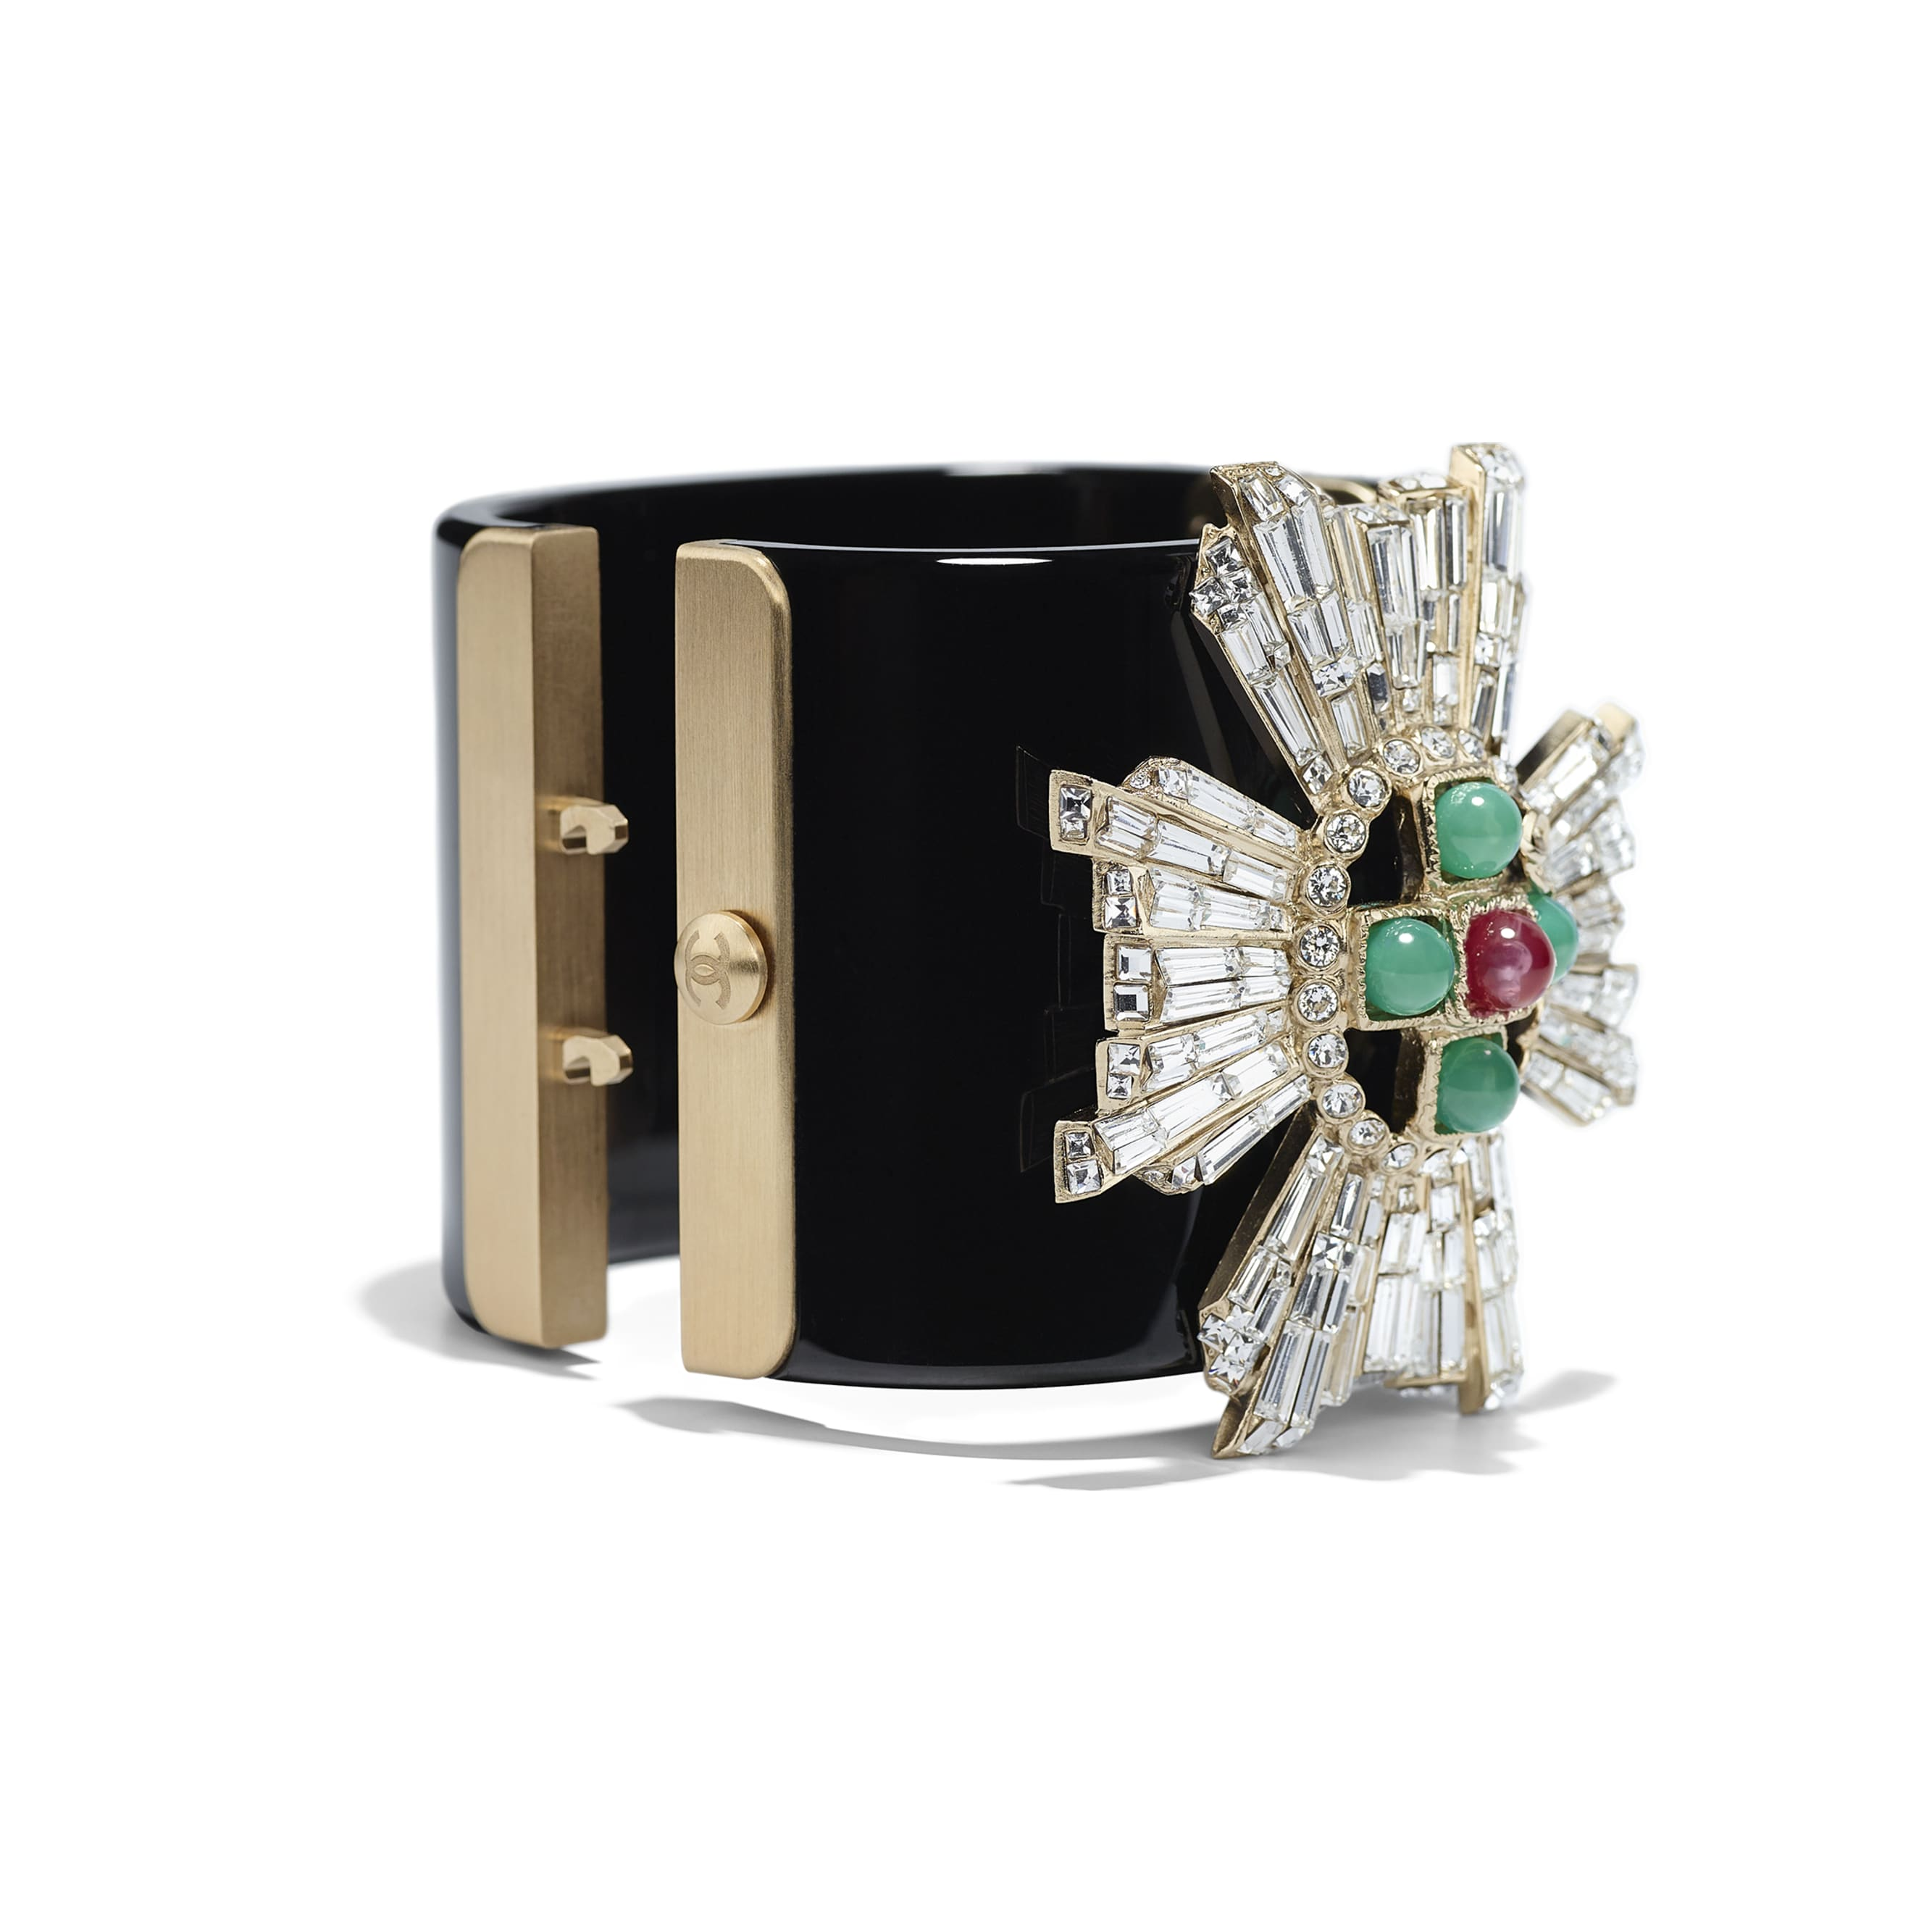 Cuff - Black, Green, Pink, Crystal & Gold - Resin, Glass Pearls, Diamanté & Metal - CHANEL - Alternative view - see standard sized version